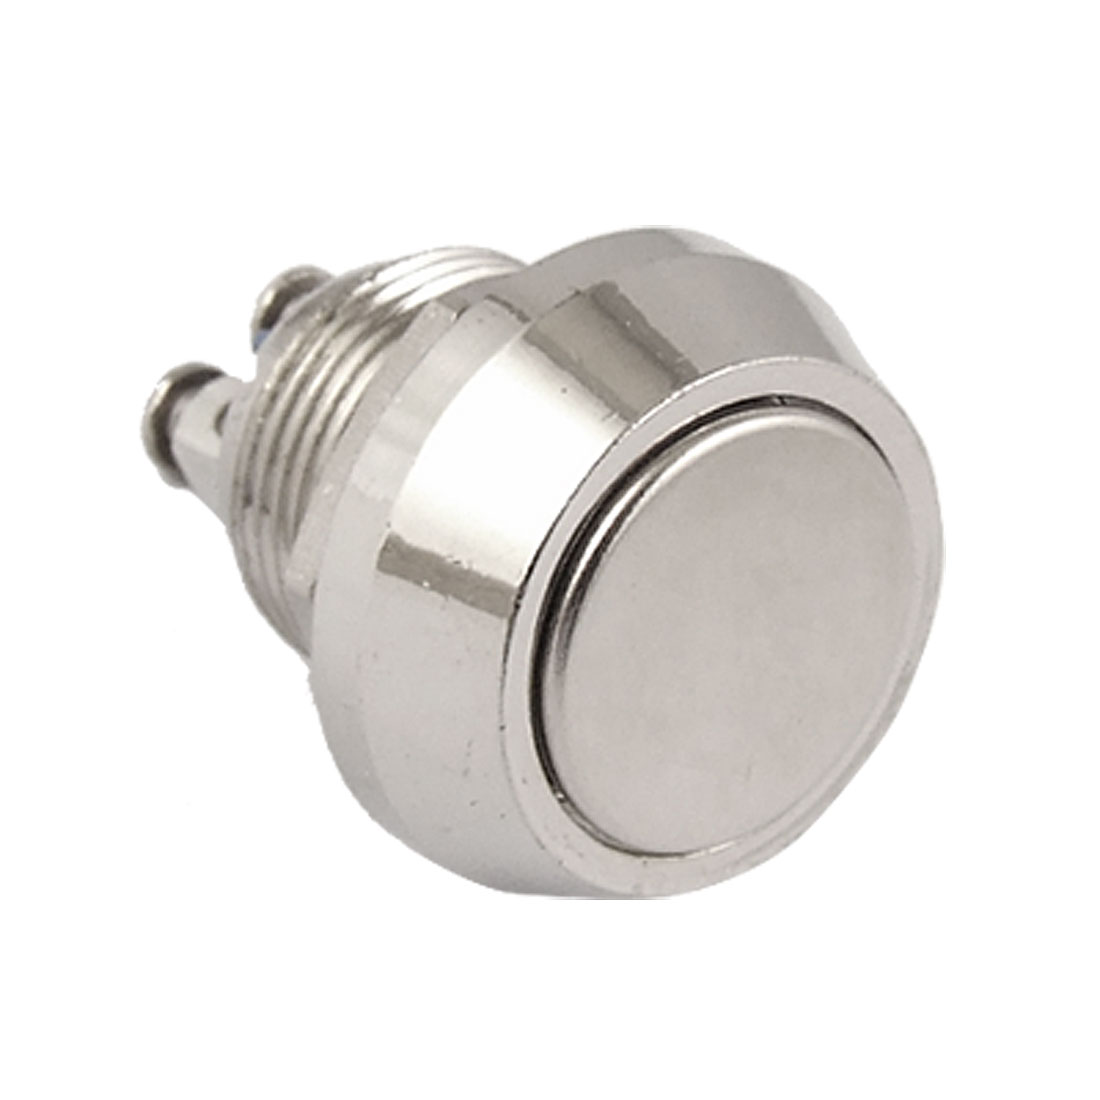 DC 36V 2A 12mm Metal Flat Head Round Momentary Push Button Switch